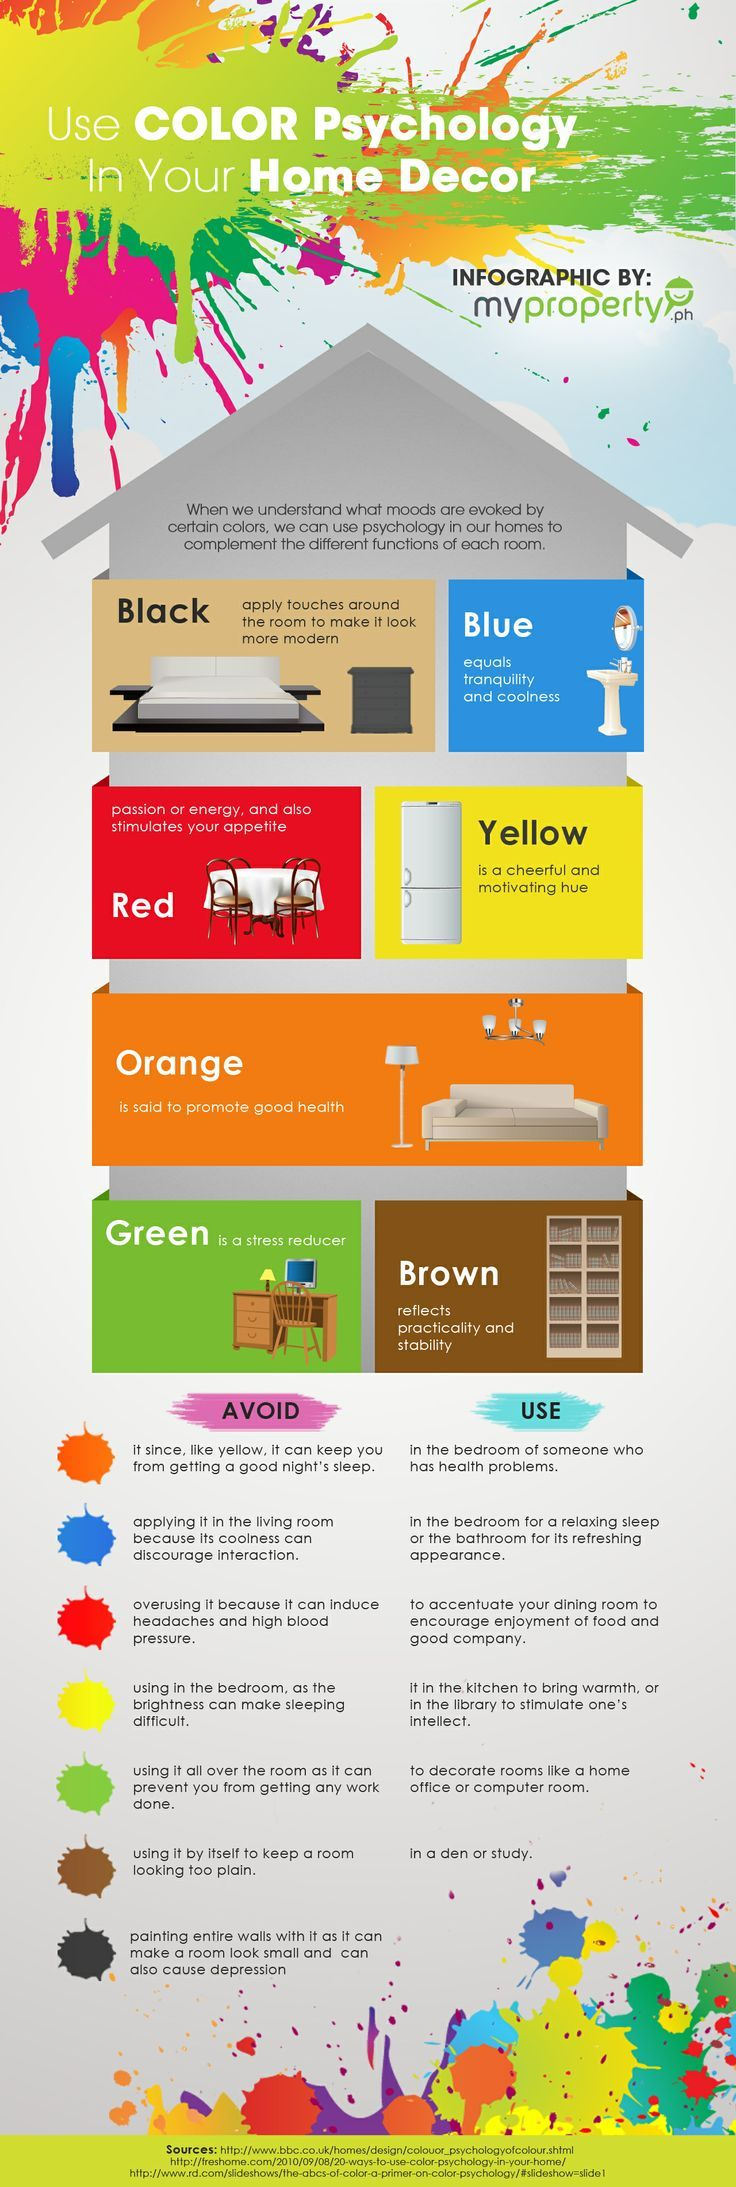 Color Psychology: Home Decor #candlecolormeanings